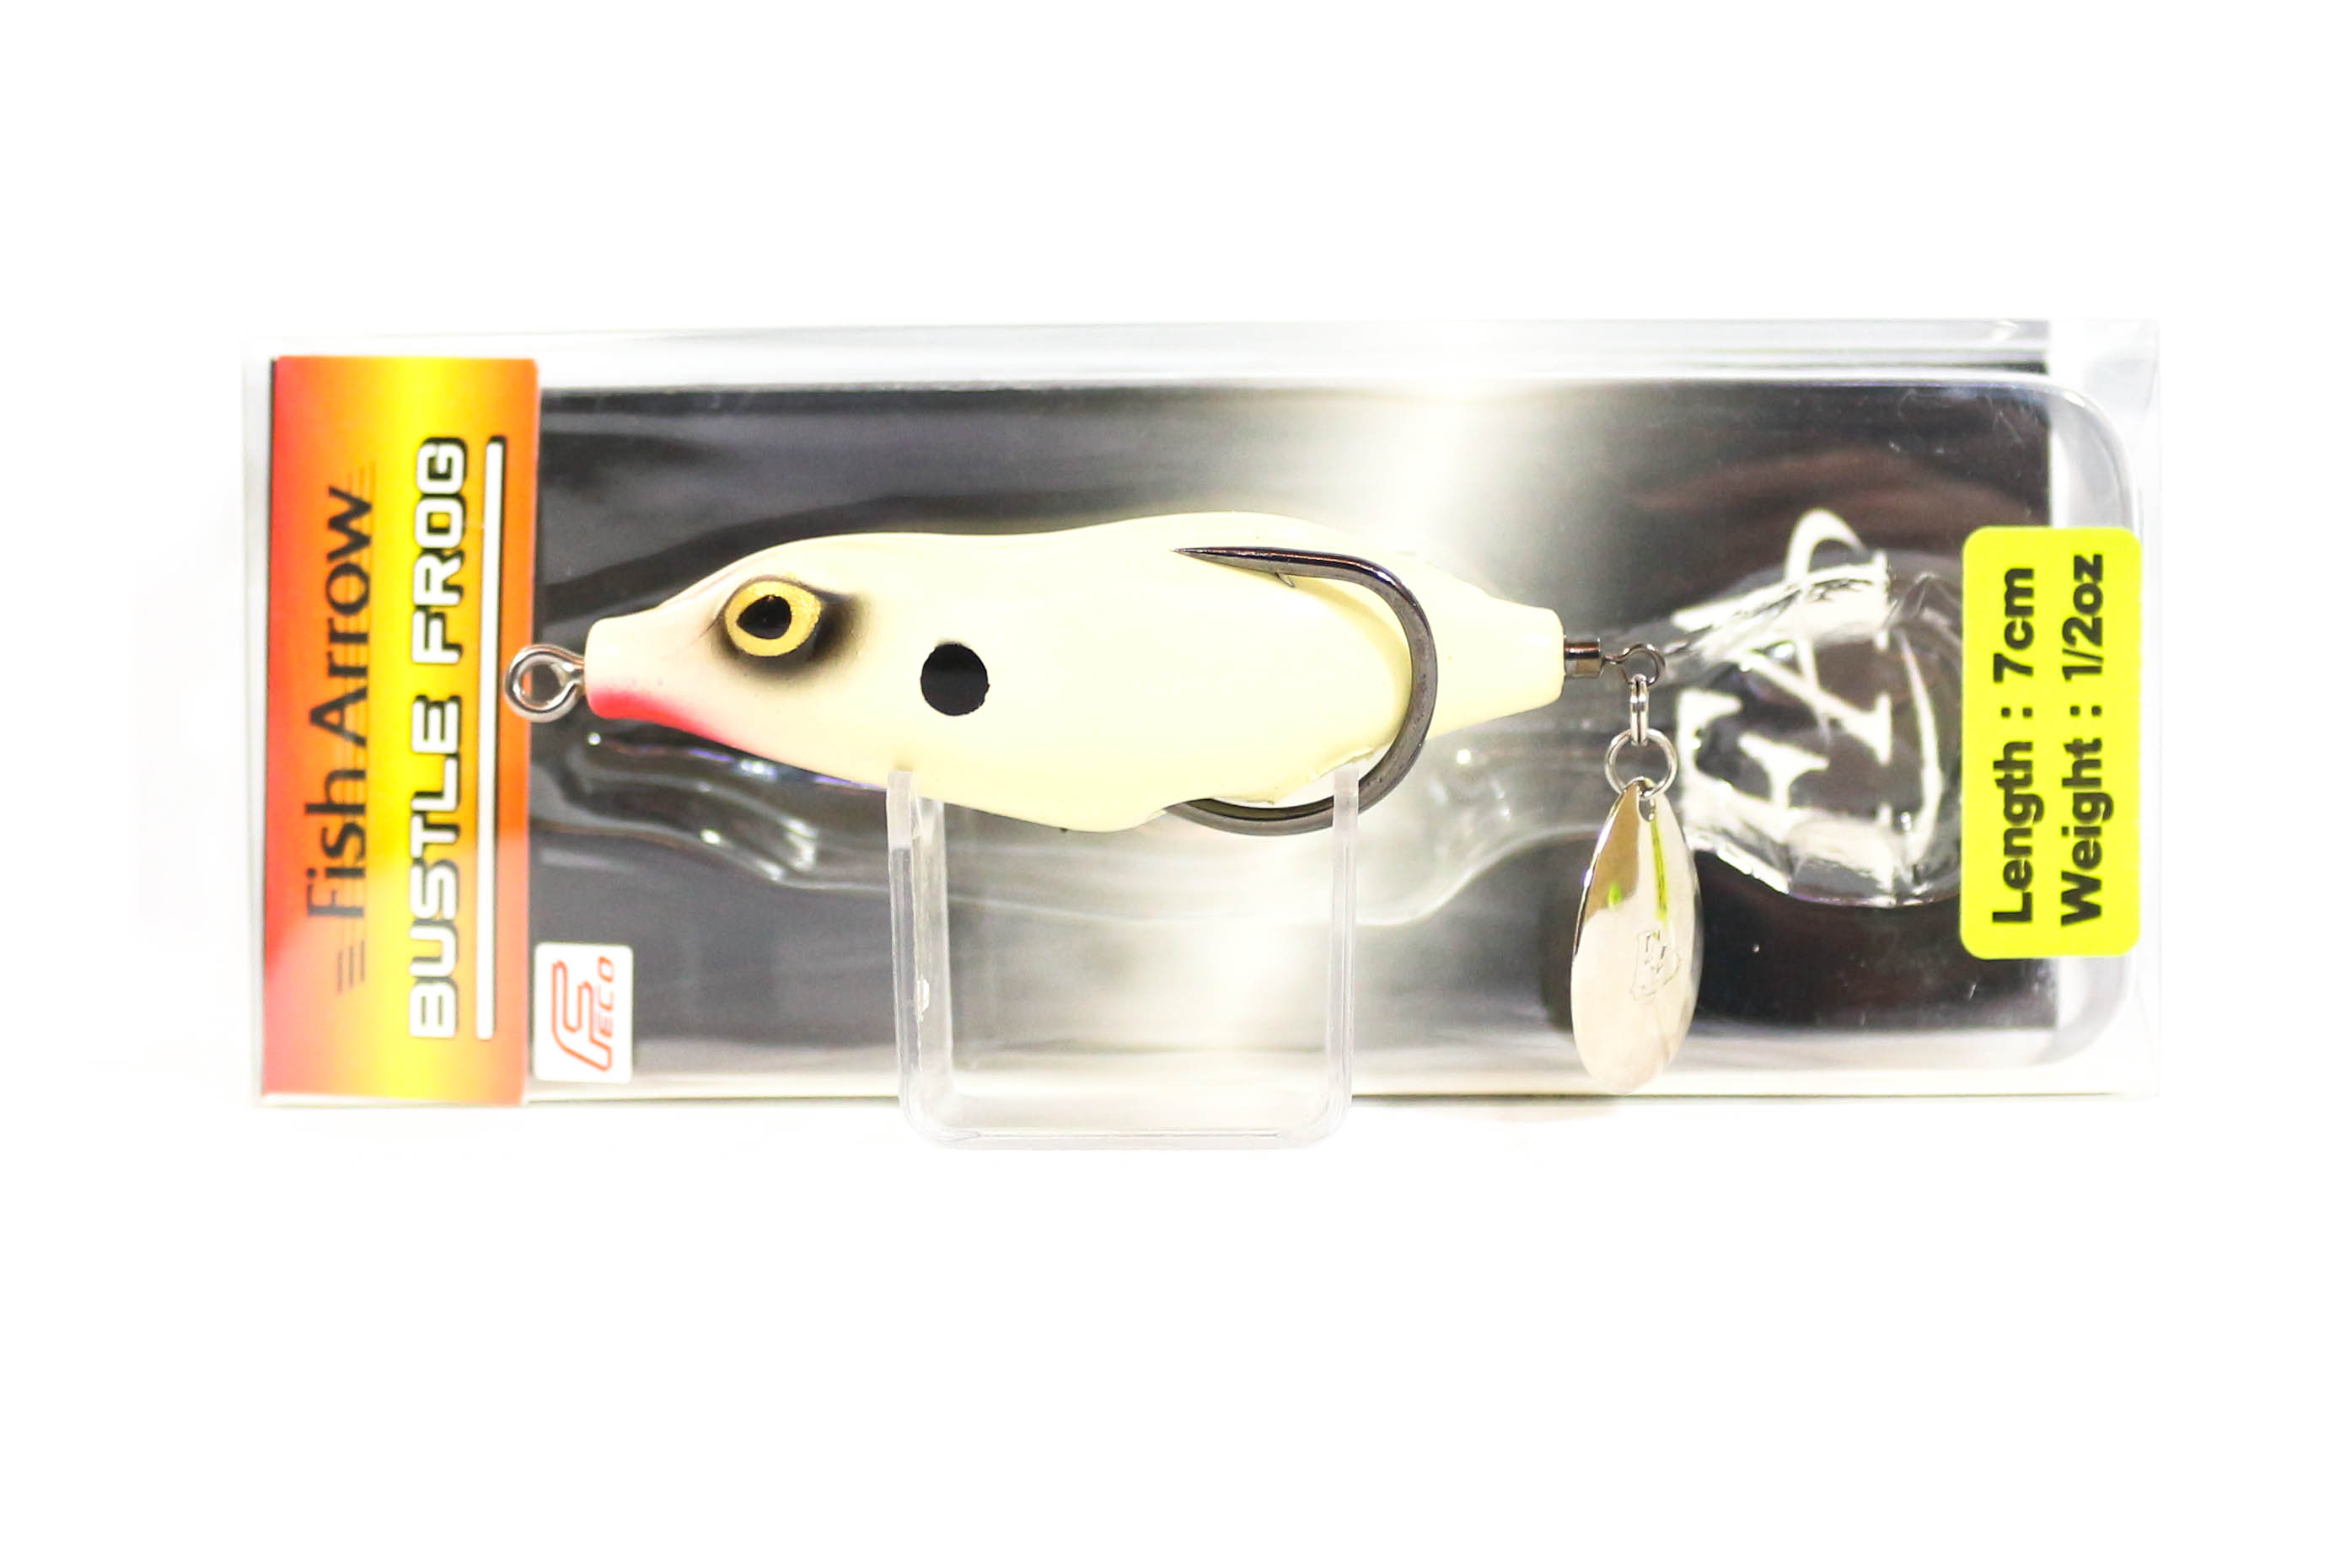 Fish Arrow Maxi Frog 7 cm 1/2 oz Soft Plastic Floating Lure 05 (4255)